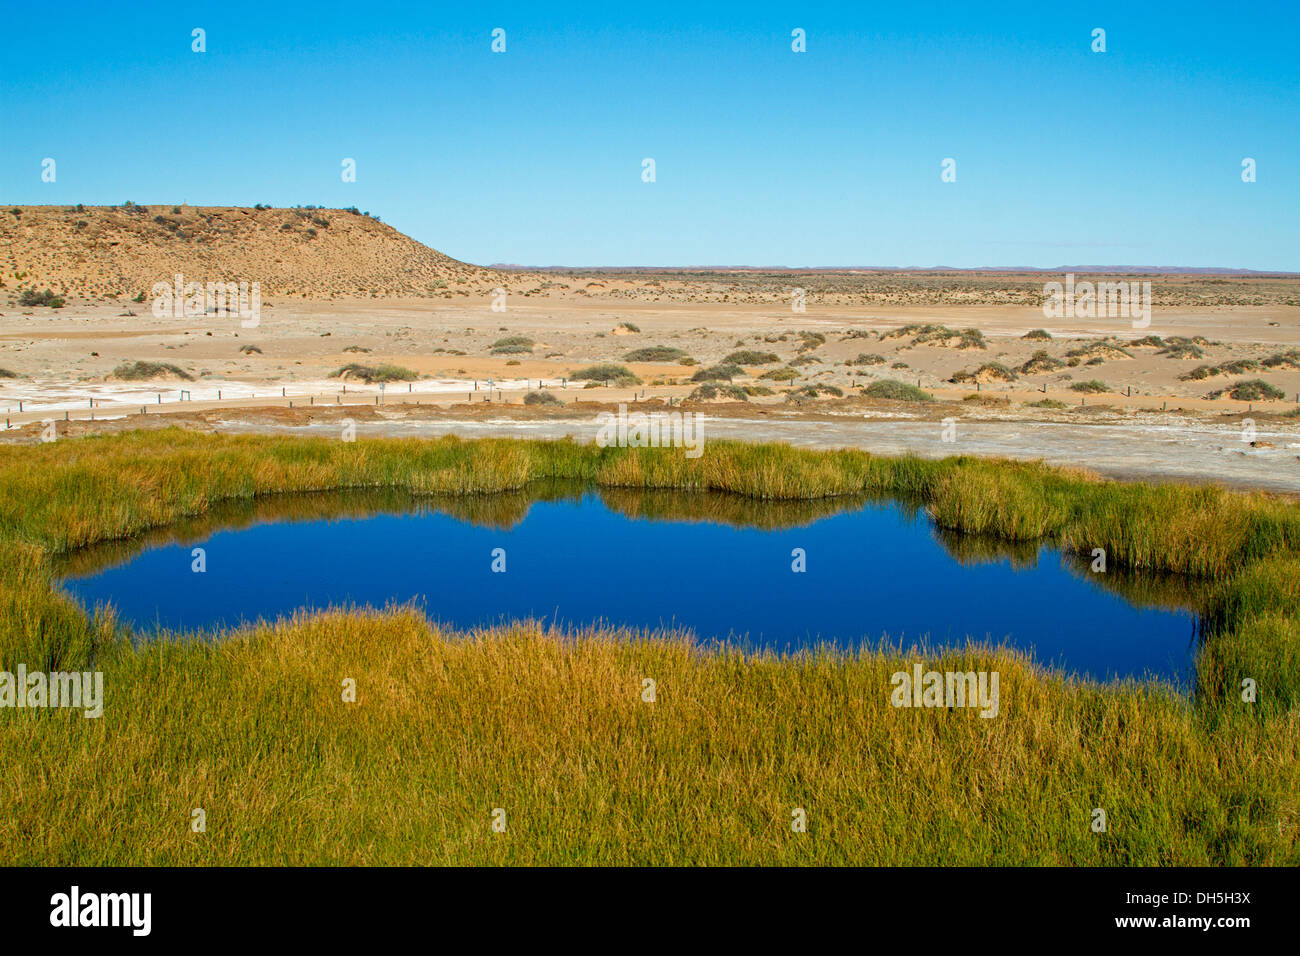 Landscape with blue waters and reeds of Blanche Cup mound spring, oasis in outback plains near Oodnadatta track South Australia - Stock Image